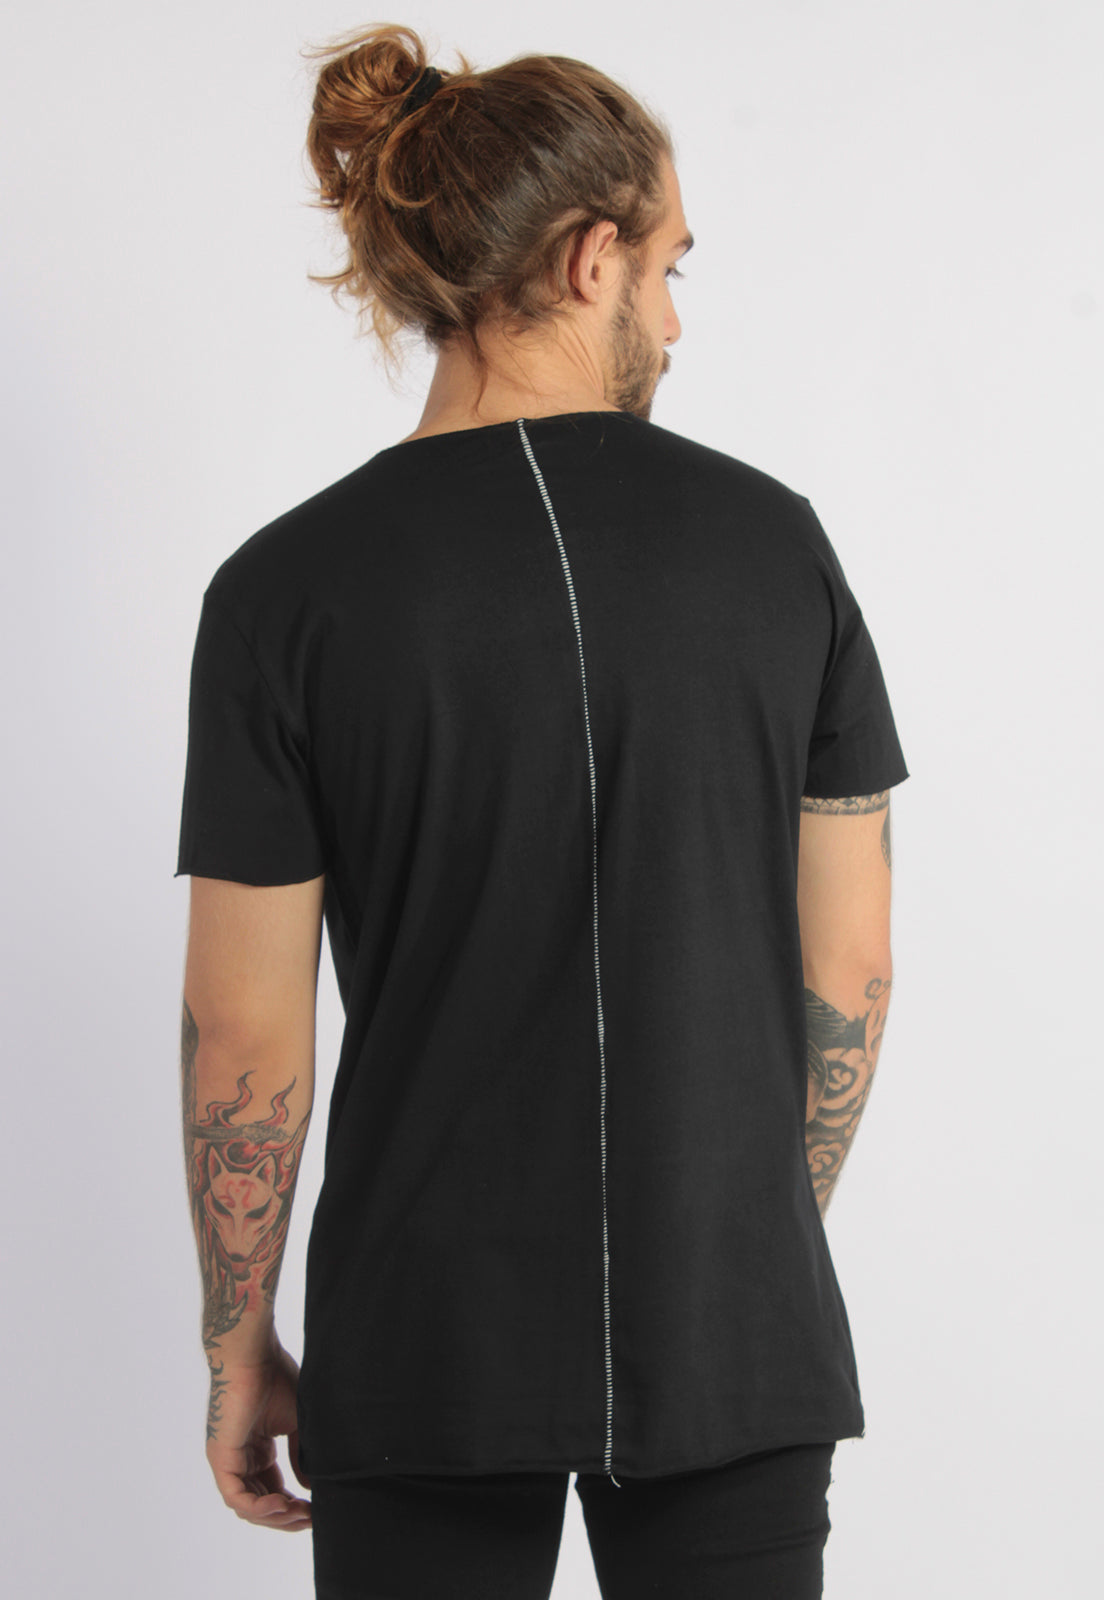 CAMISETA MASCULINA CORTE A FIO - GRAPHIC NATURE